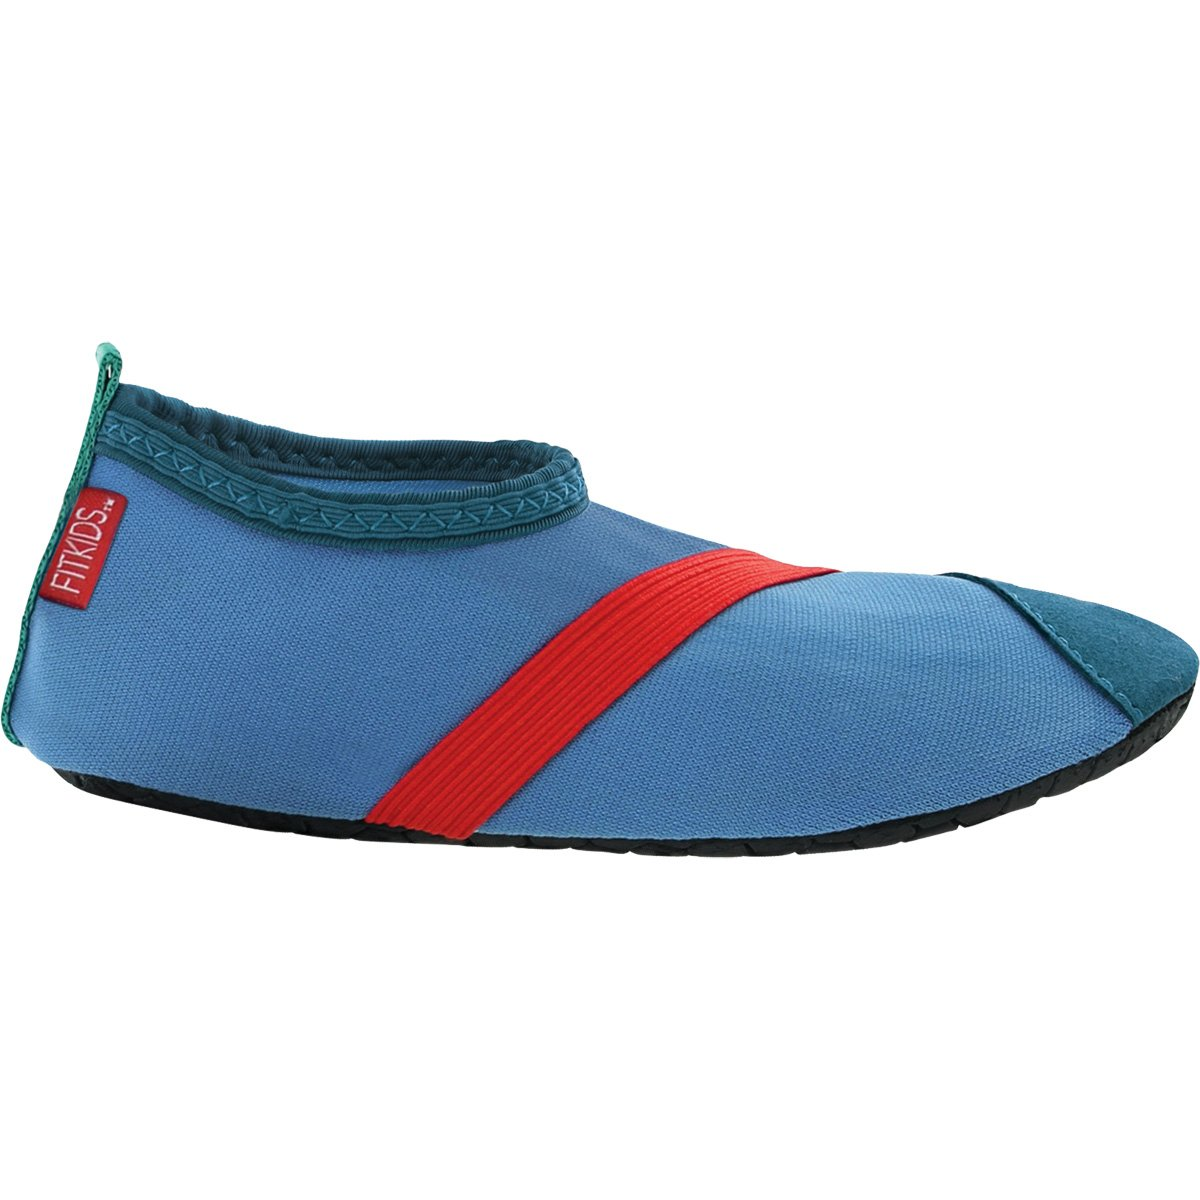 FitKicks Kids Active Lifestyle Footwear - Blue - X-Large